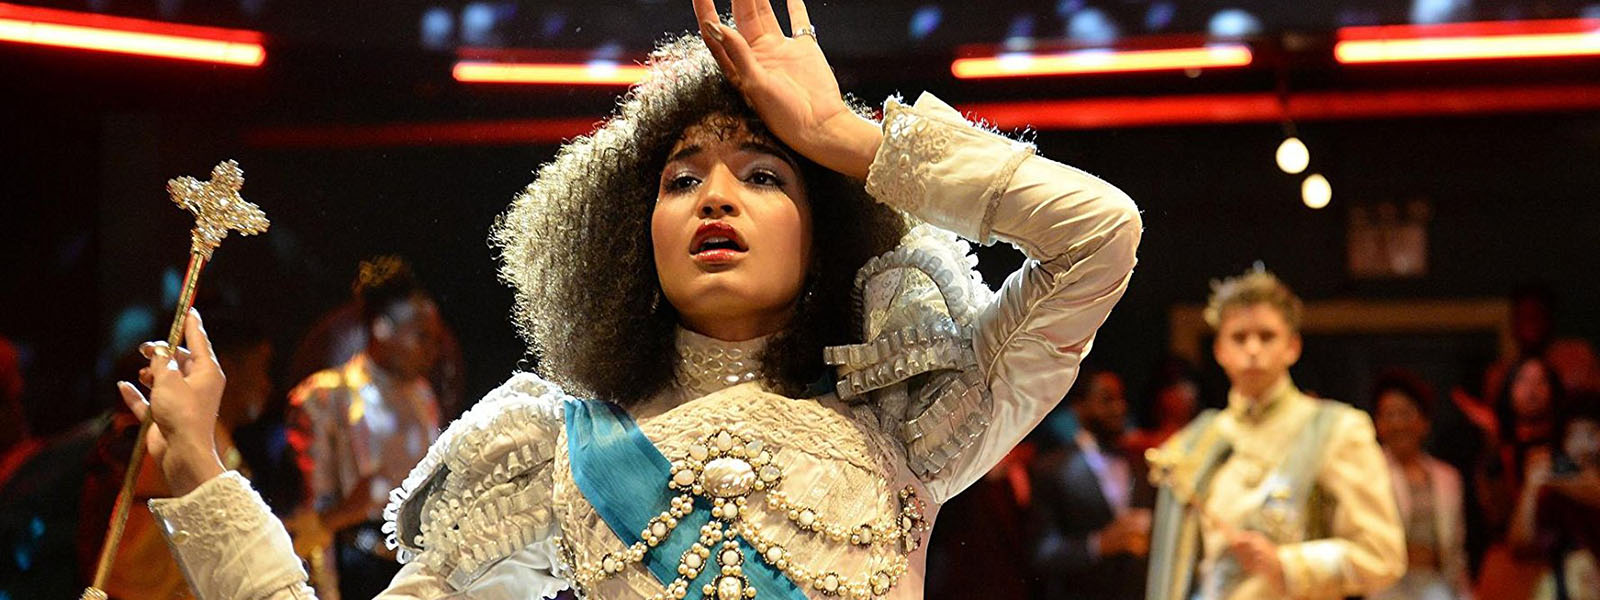 """See Tanase Popa's work as a producer in """"Pose"""" and many other Ryan Murphy projects on Netflix including """"Hollywood"""" and """"The Prom"""""""